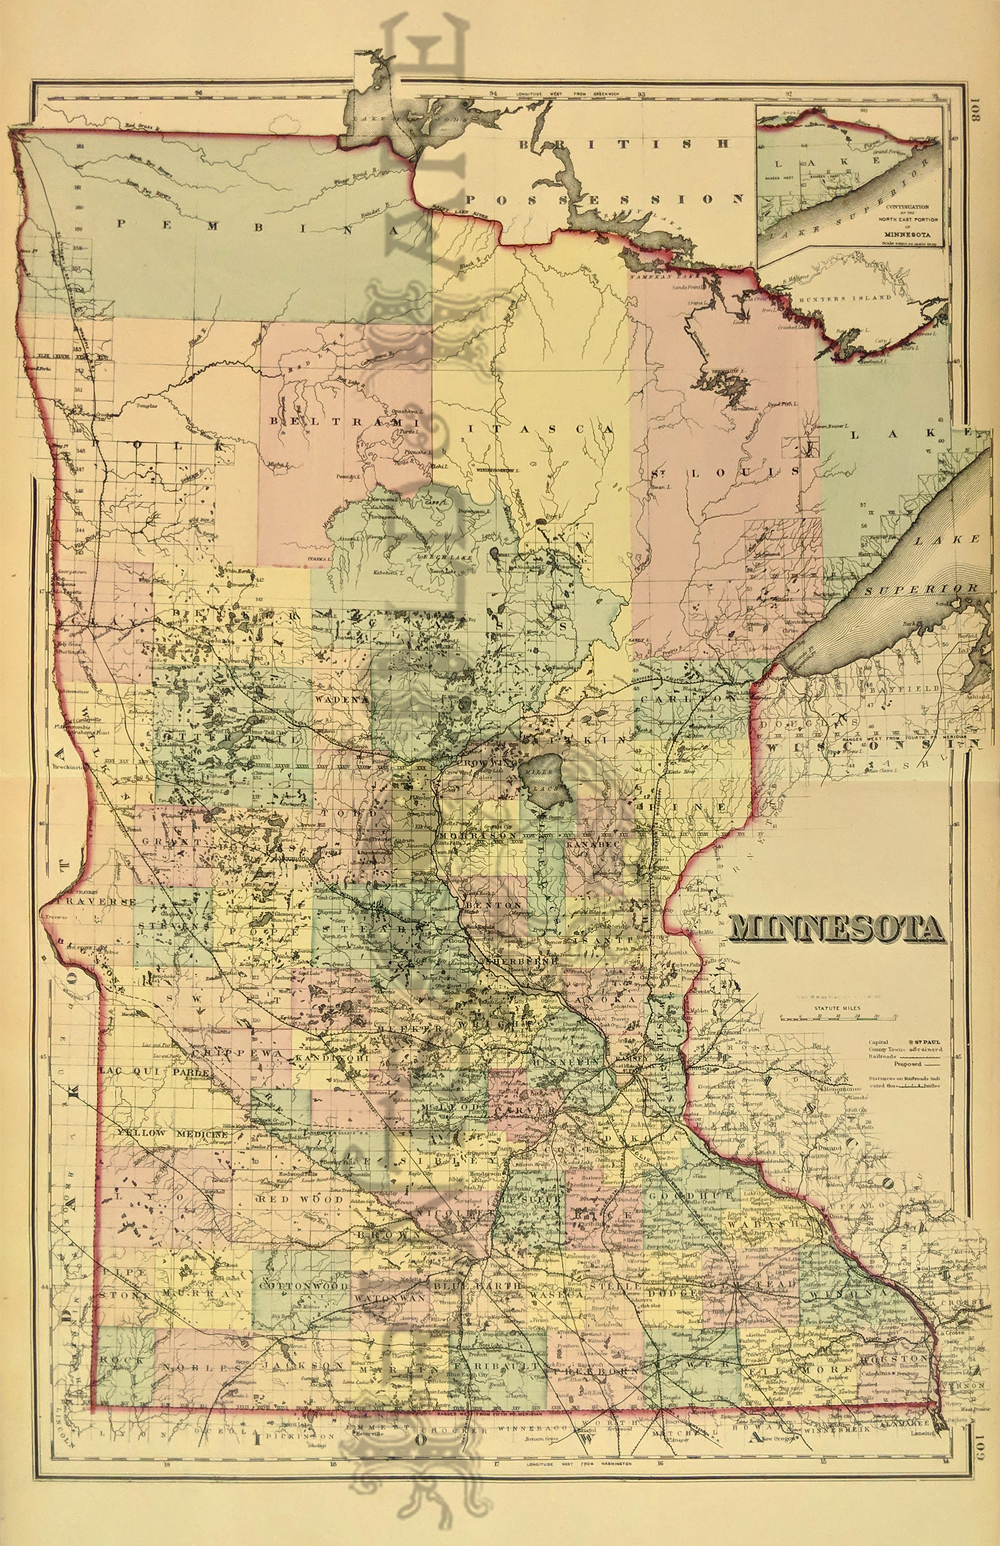 Prints Old & Rare - Minnesota - Antique Maps & Prints